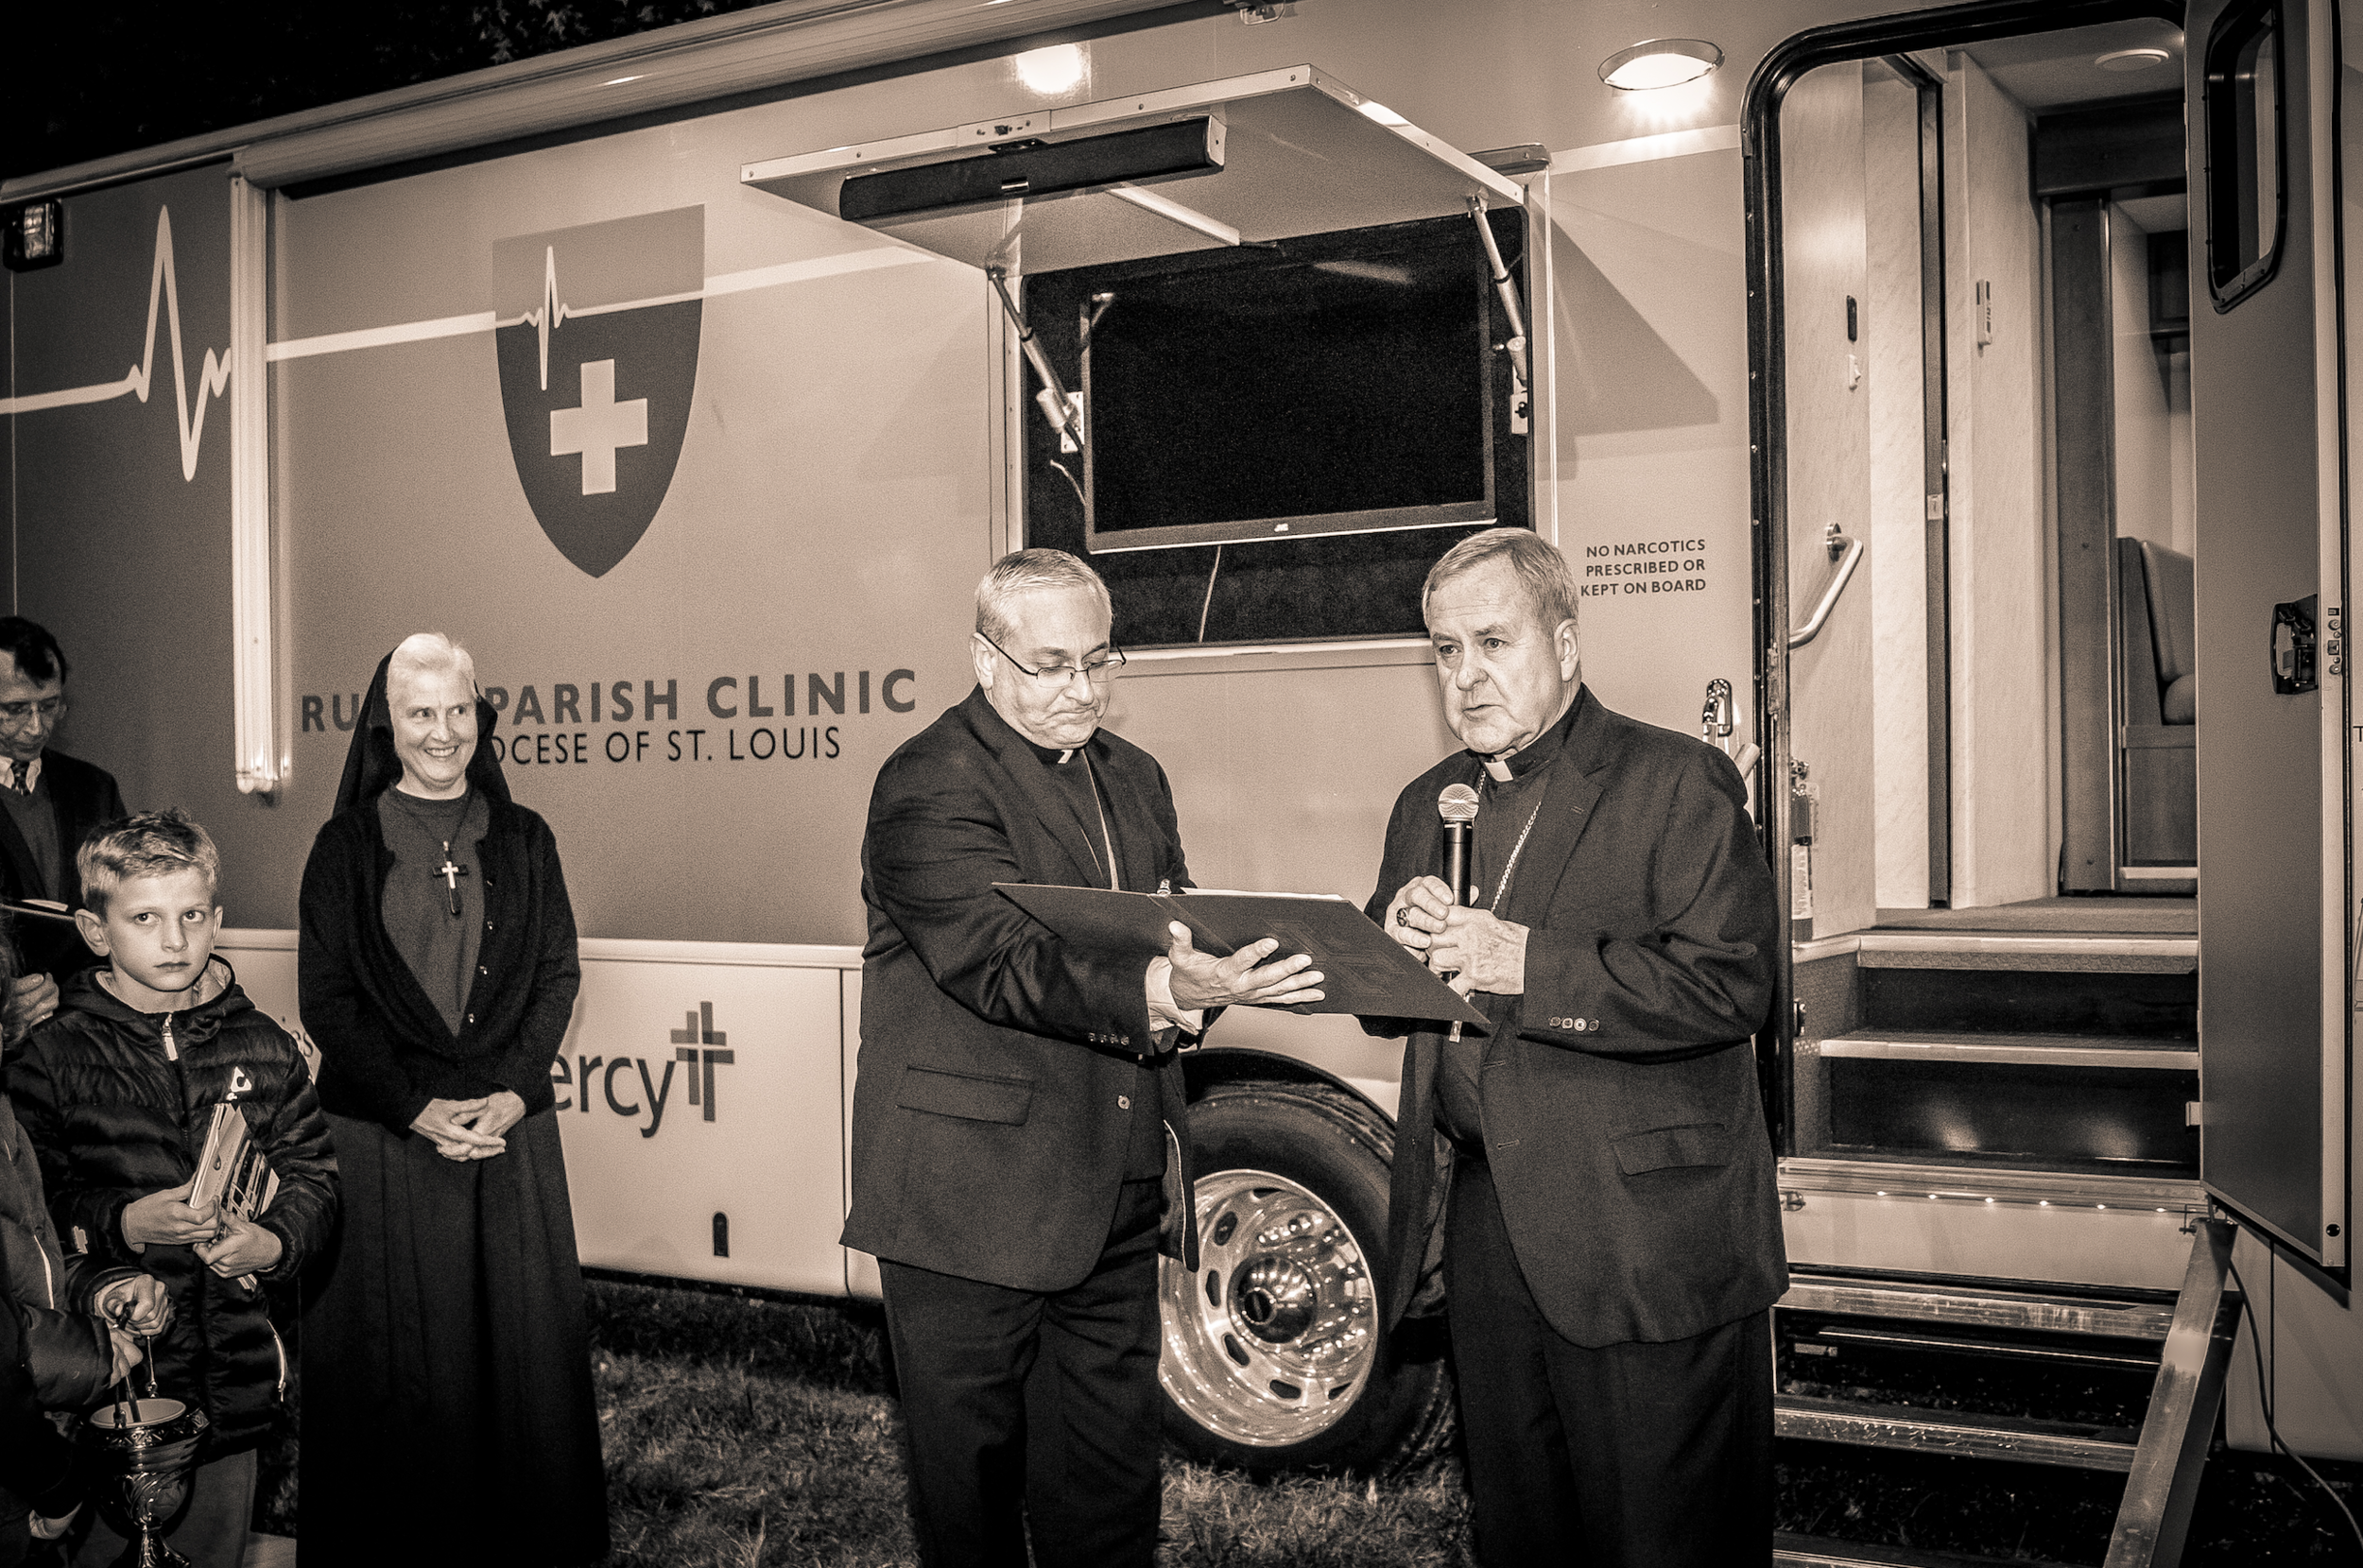 Rural Parish Clinic - of the Archdiocese of Saint Louis